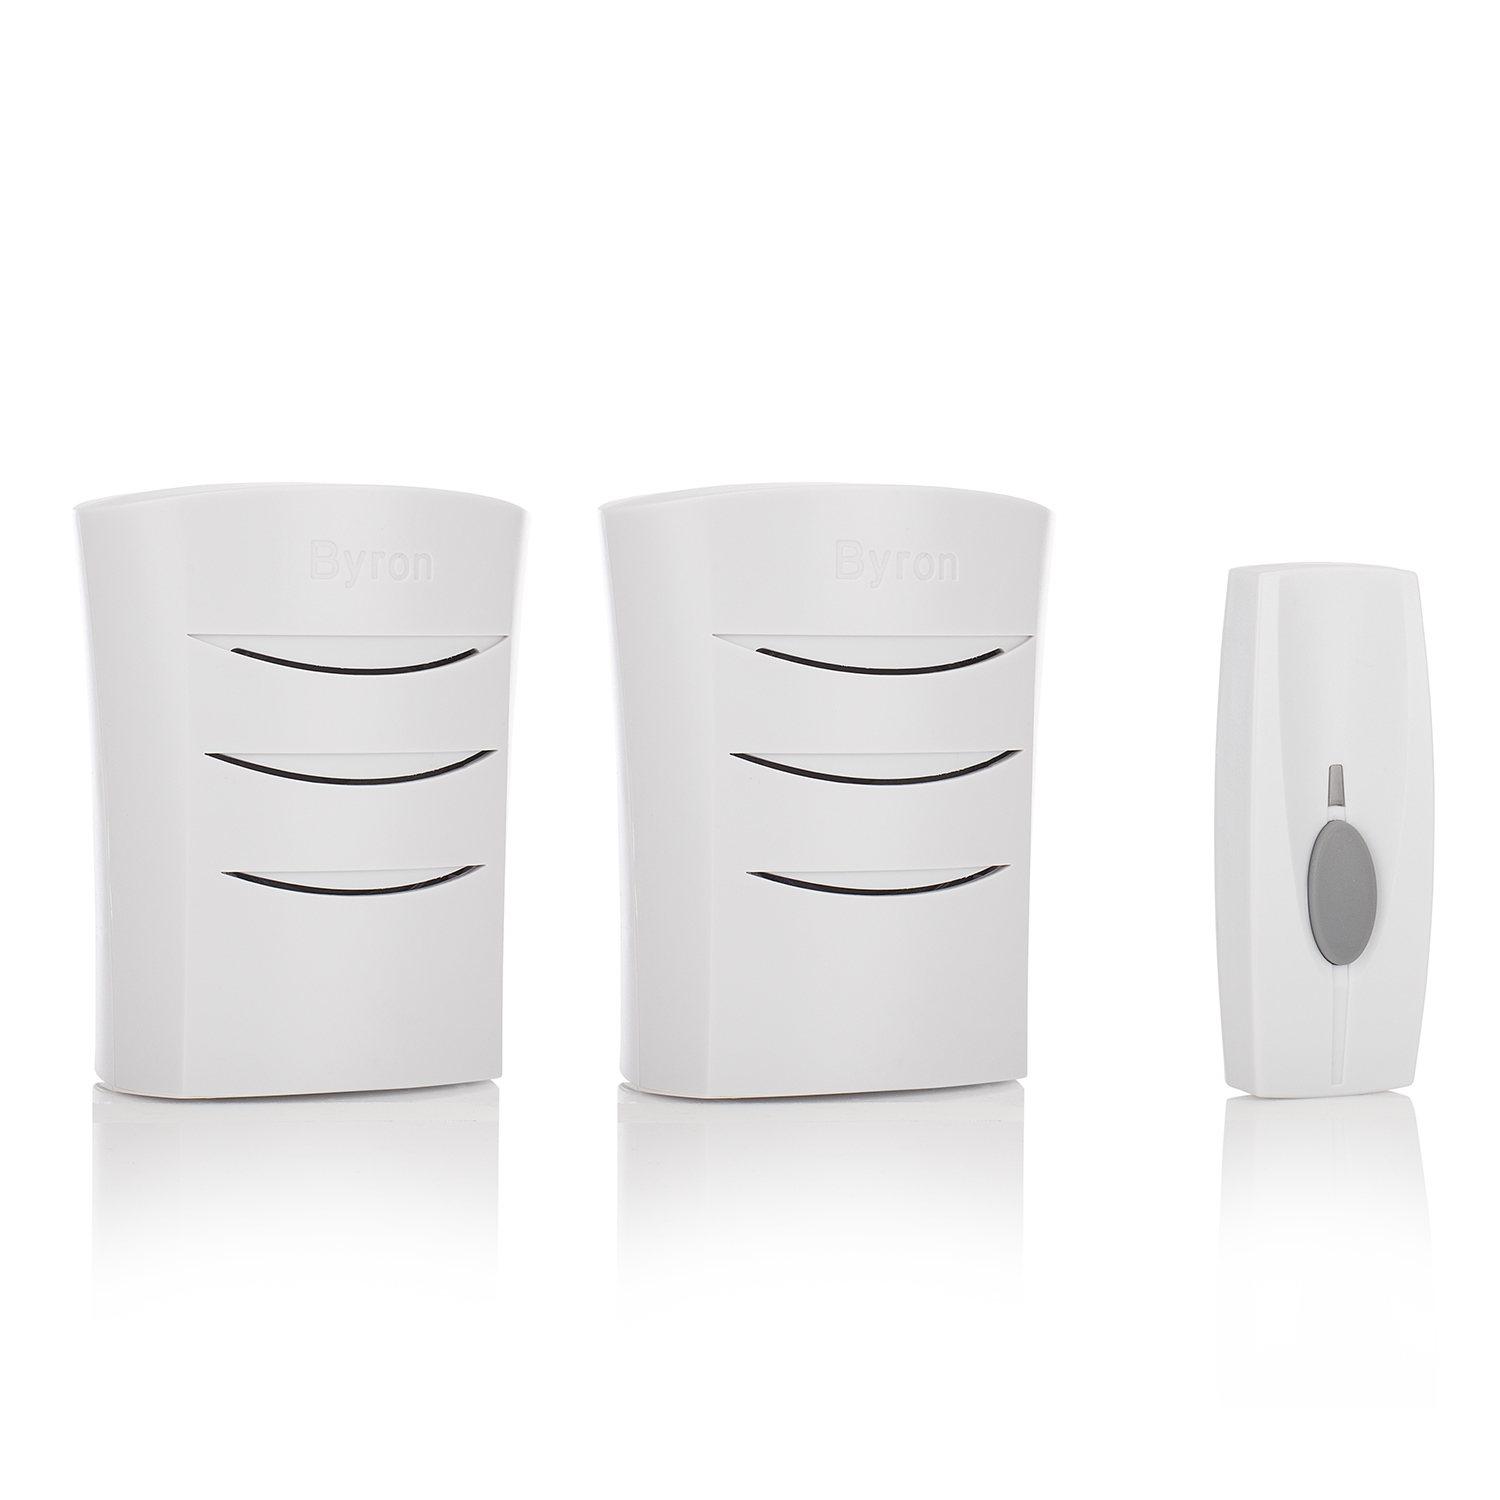 Image of Byron BY112 60m Wireless Doorbell Kit with Portable & Plug In Chimes